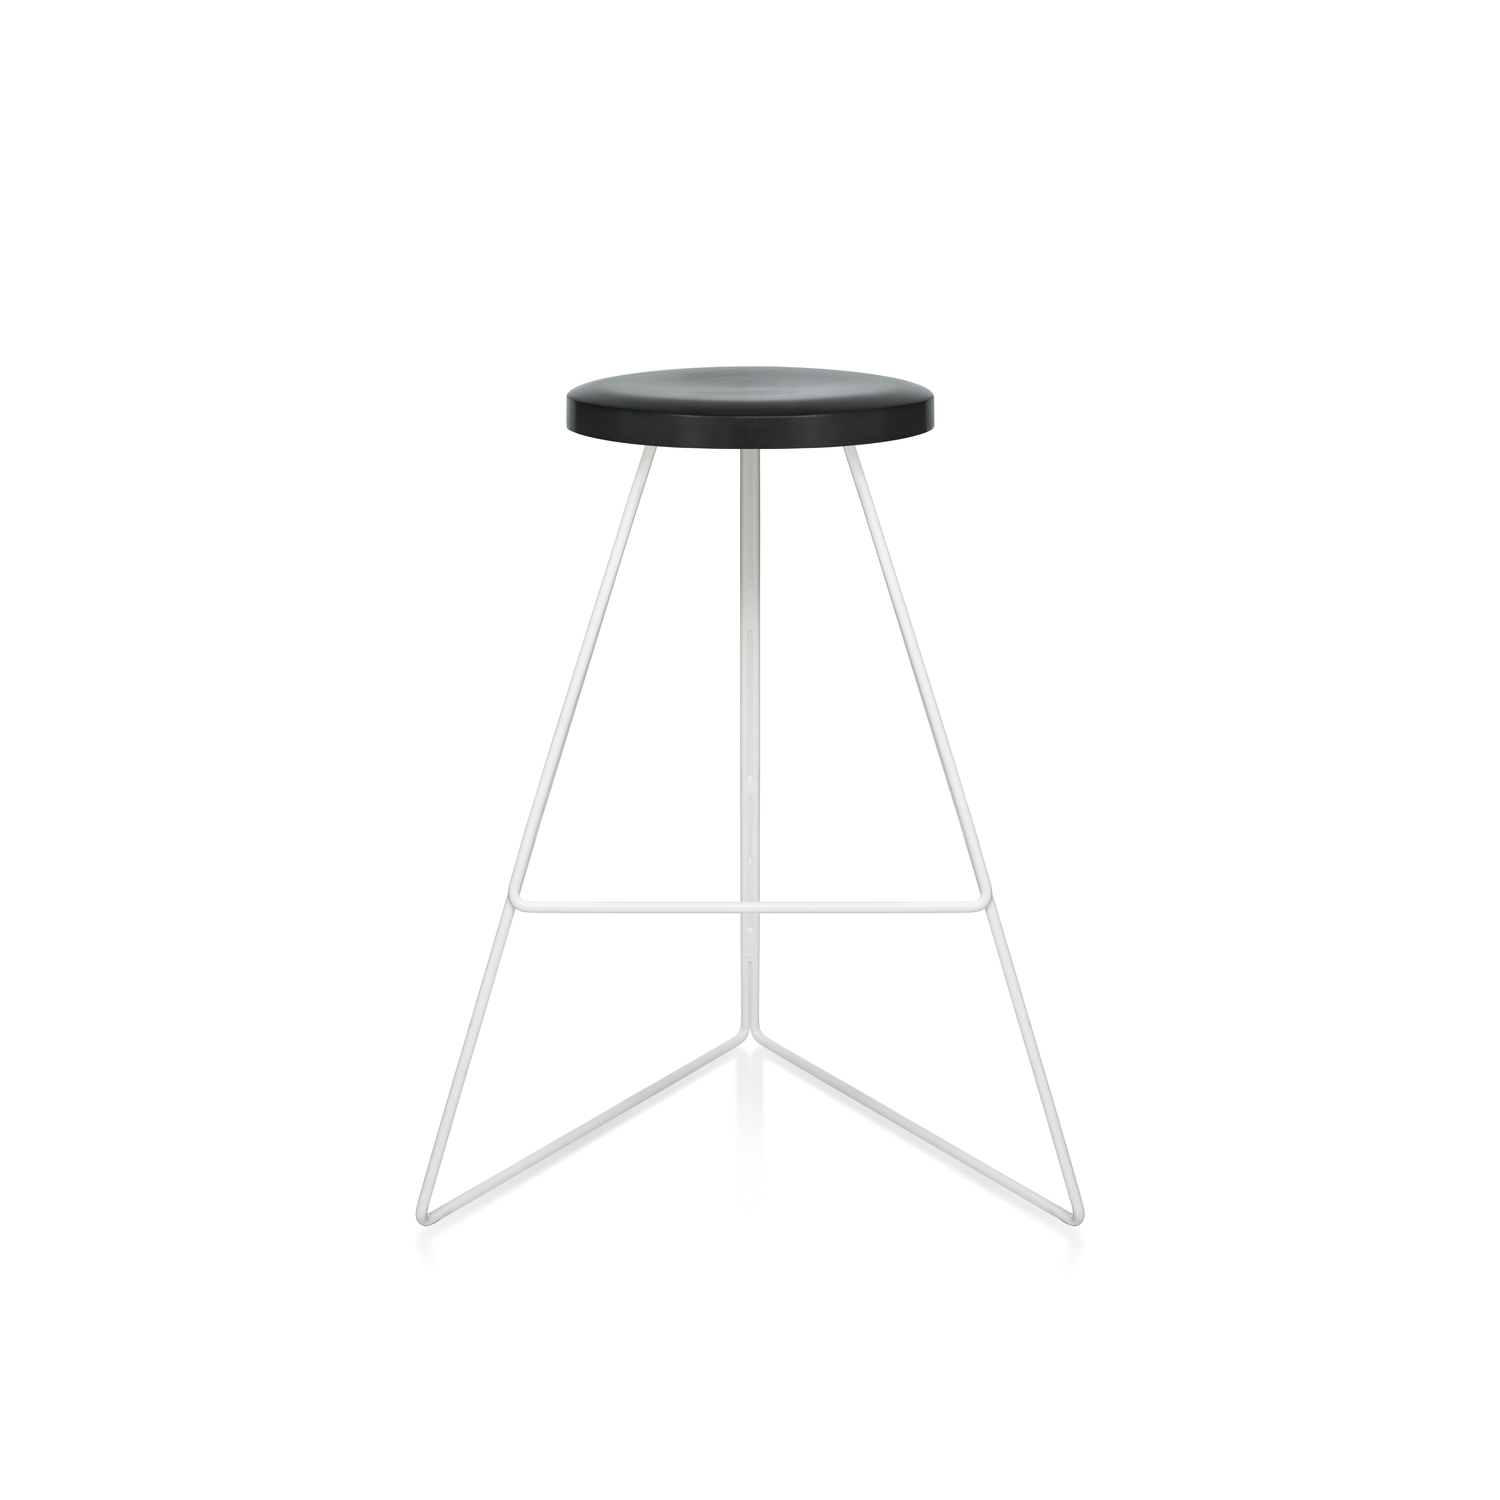 Charcoal seat white base front